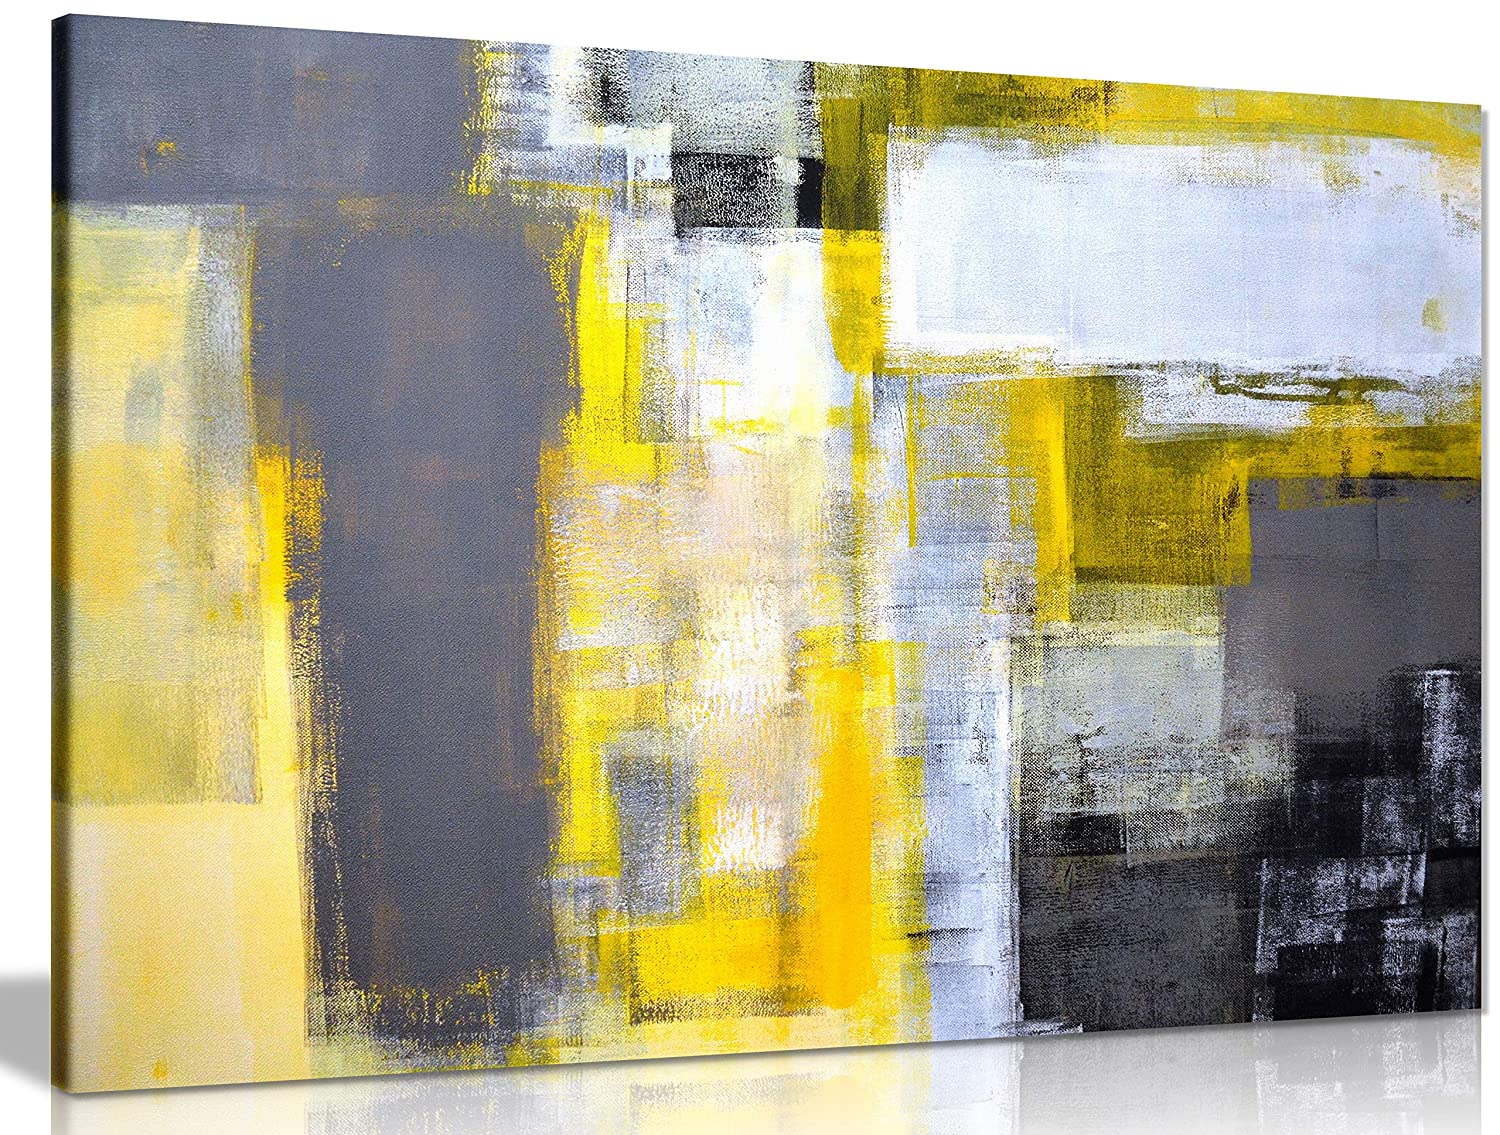 Office art grey and yellow abstract art painting canvas wall art picture print 24x16